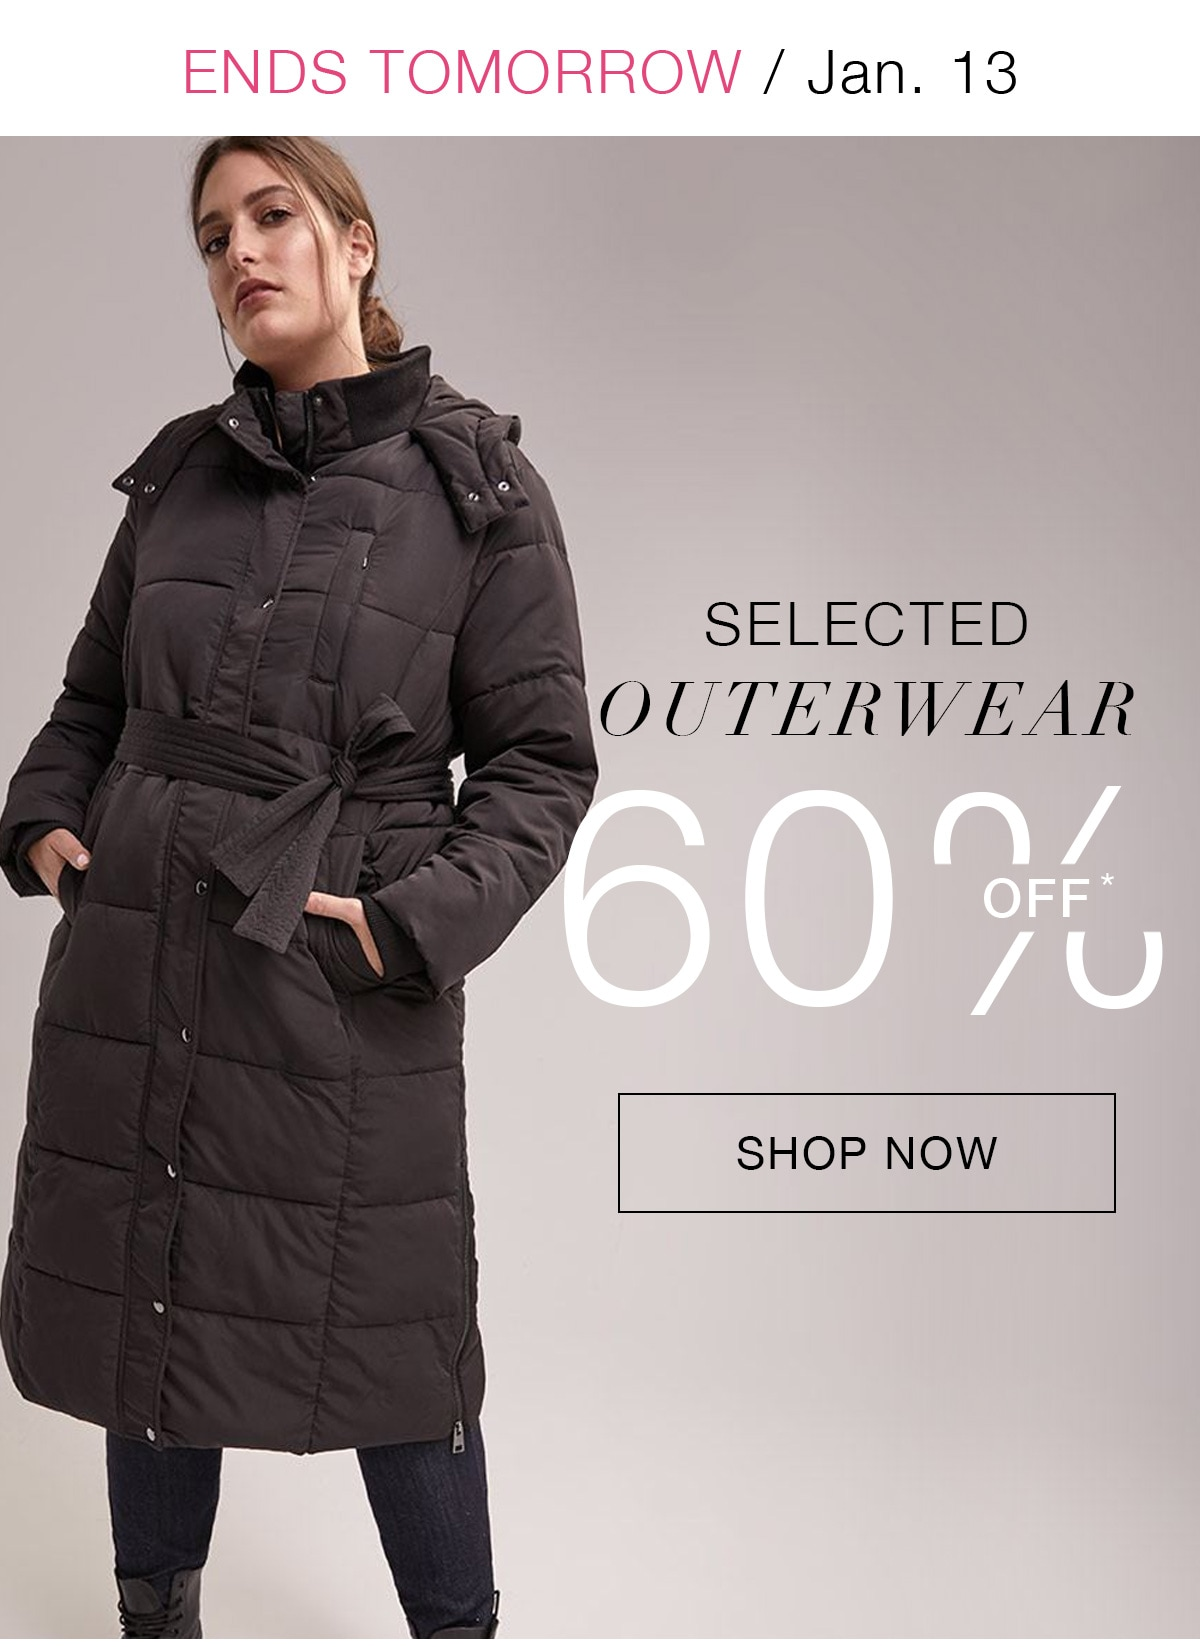 60% off* selected outerwear